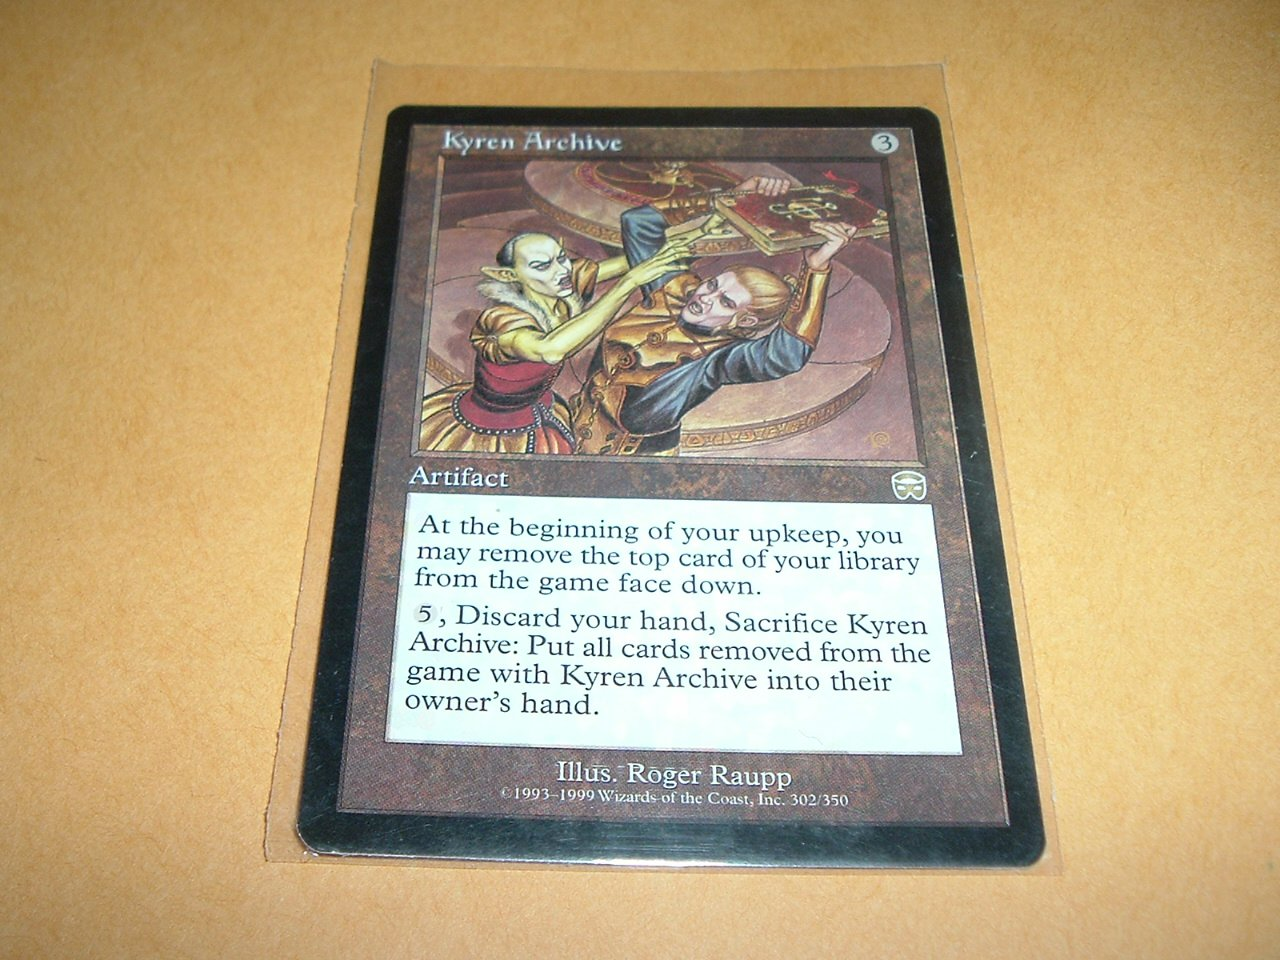 Kyren Archive (Magic MTG: Mercadian Masques Card #302) UNPLAYED Artifact RARE, for sale